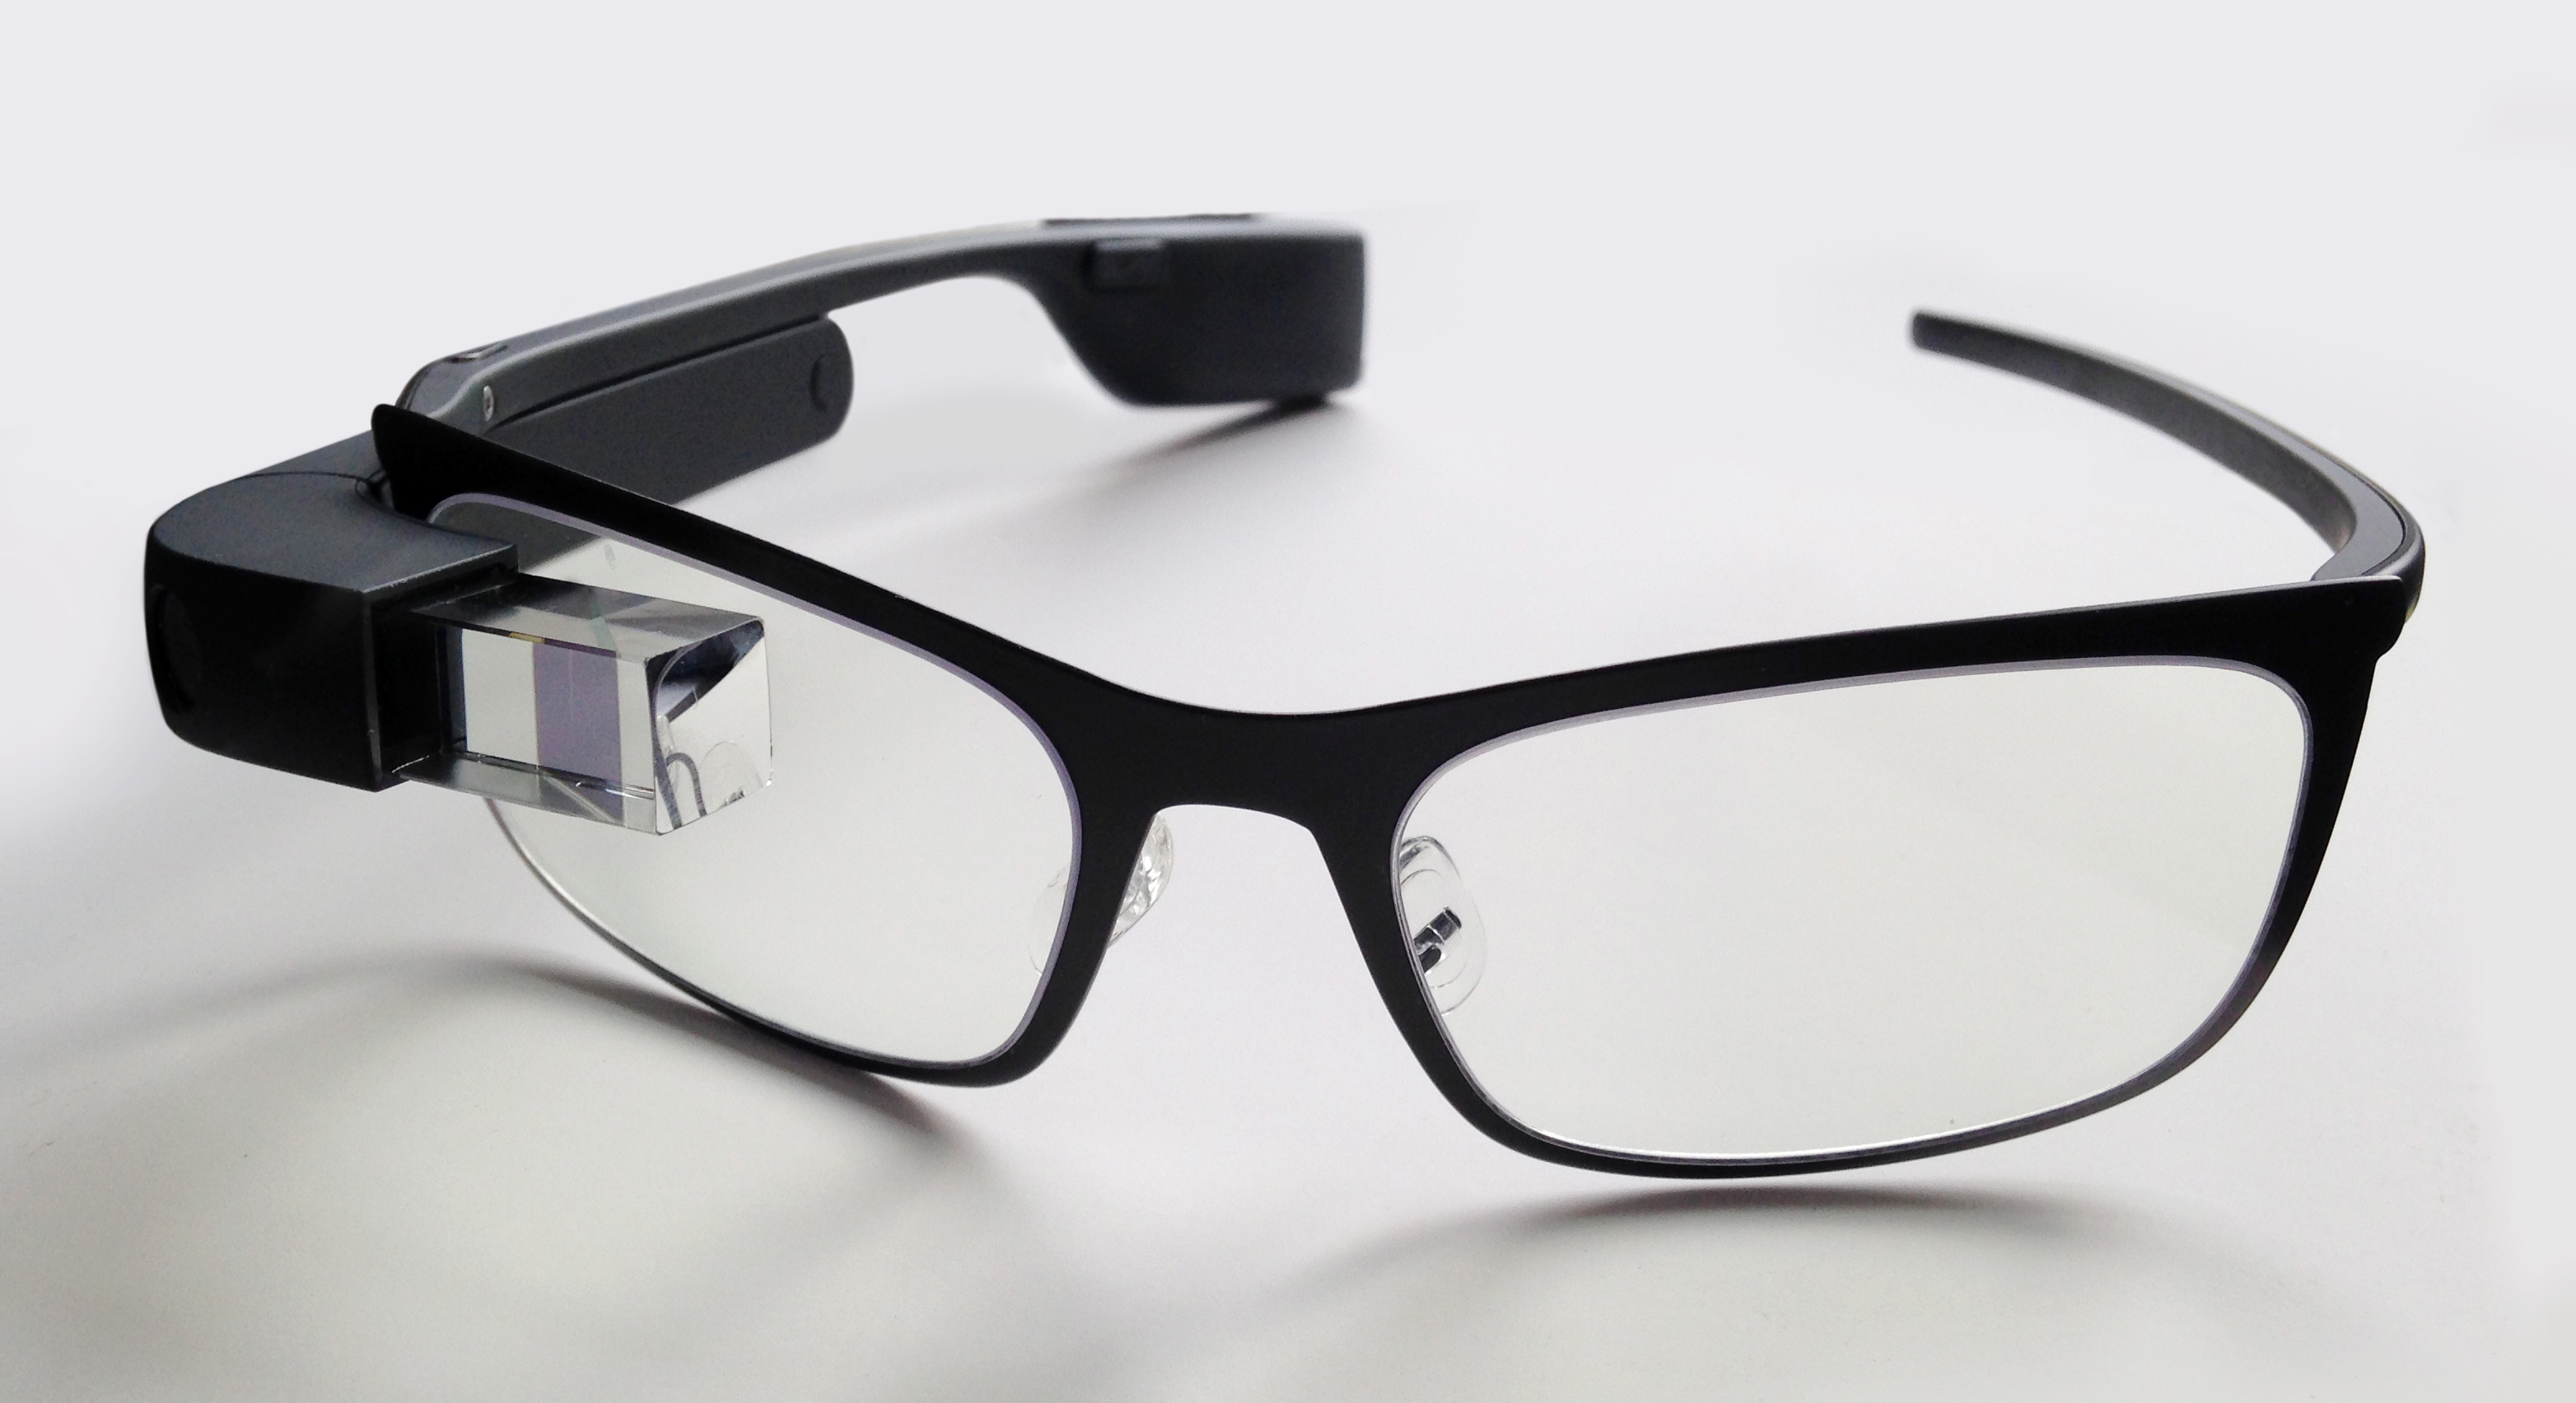 Google Glass - CC BY-SA 3.0